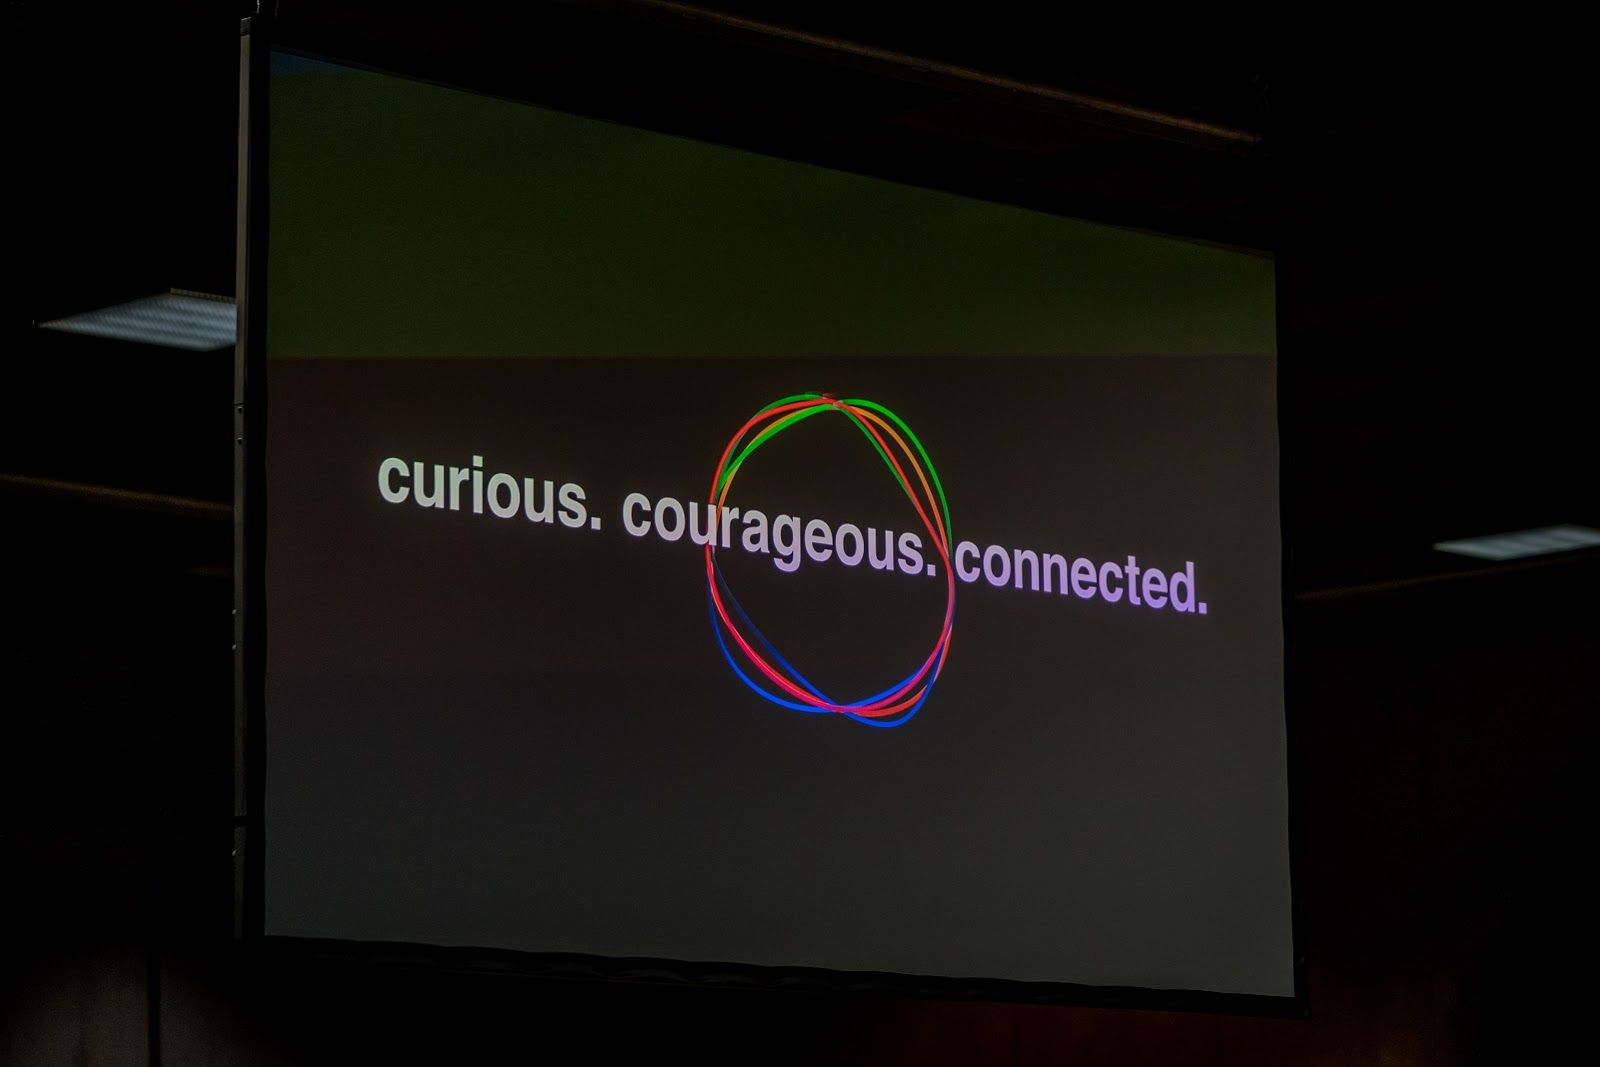 curious. courageous. connected.